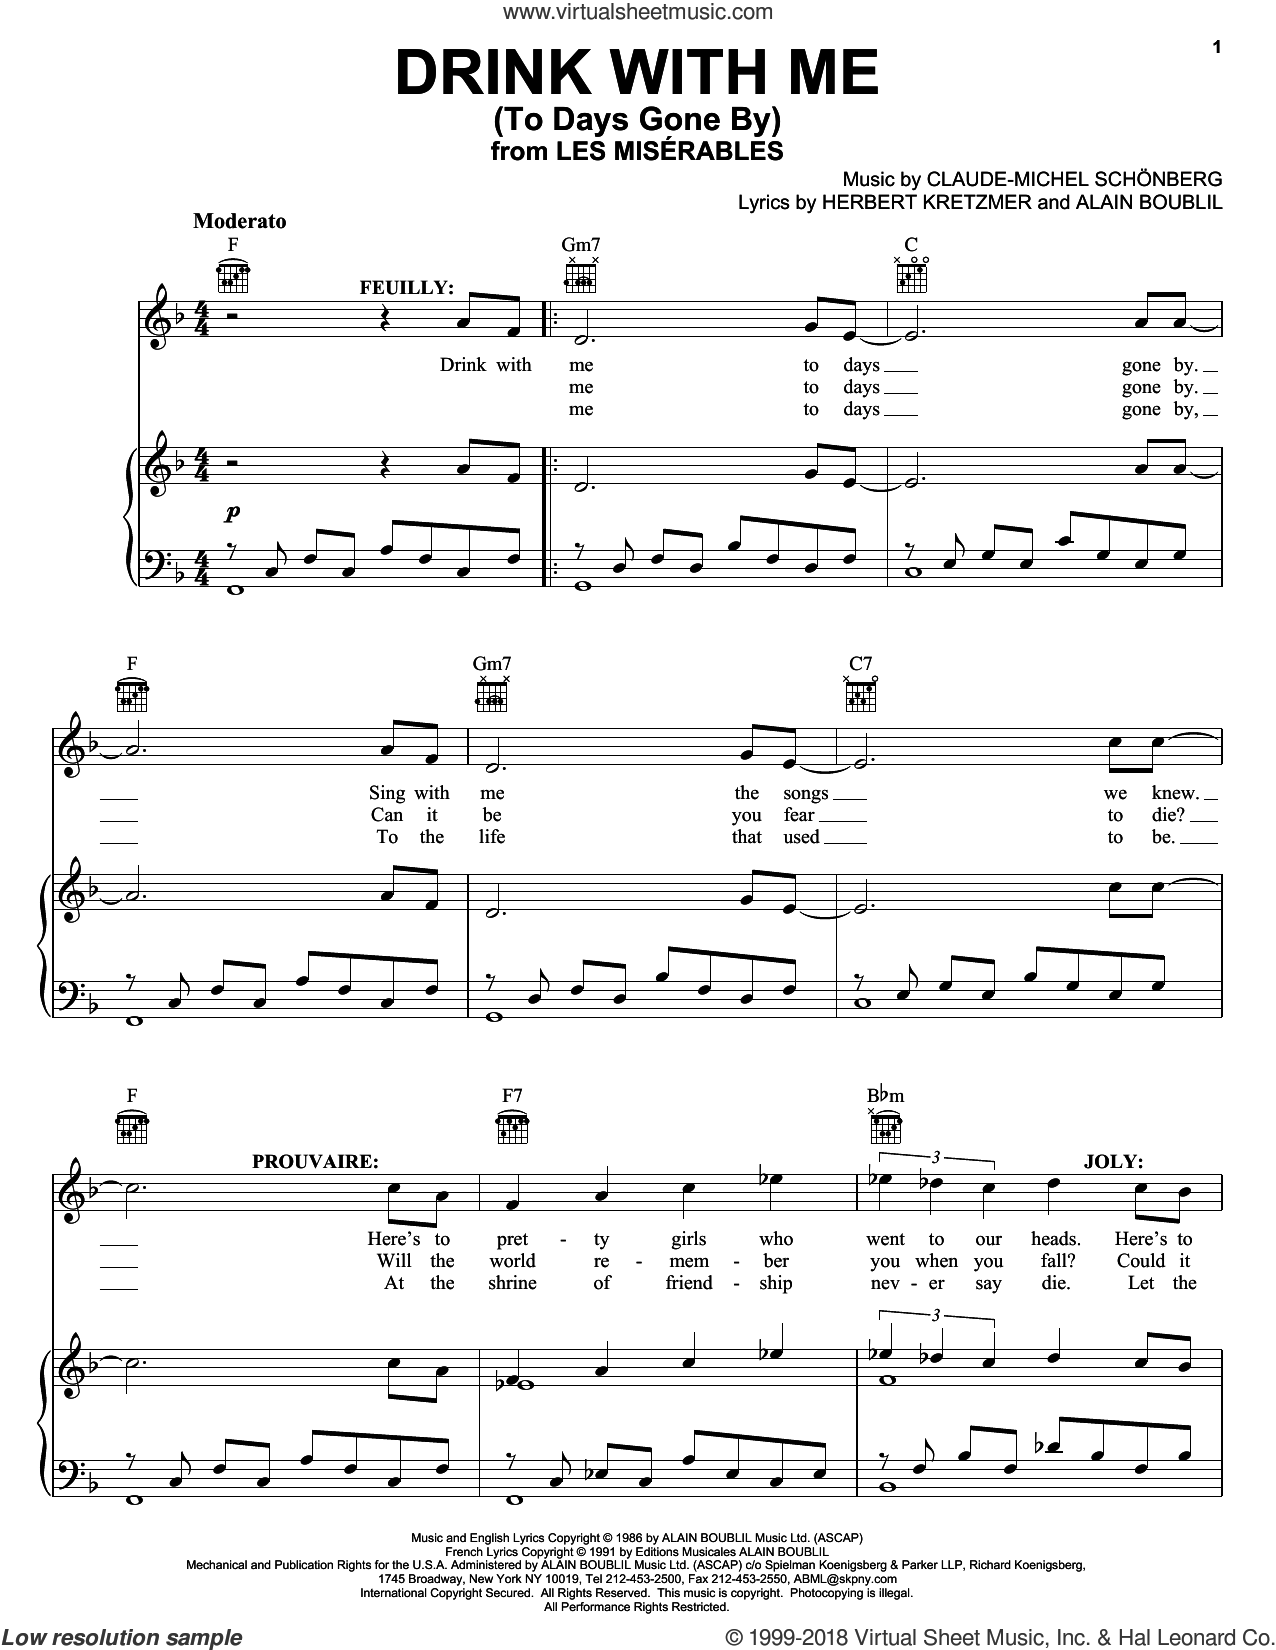 Drink With Me (To Days Gone By) sheet music for voice, piano or guitar by Alain Boublil, Les Miserables (Musical), Claude-Michel Schonberg and Herbert Kretzmer, intermediate skill level